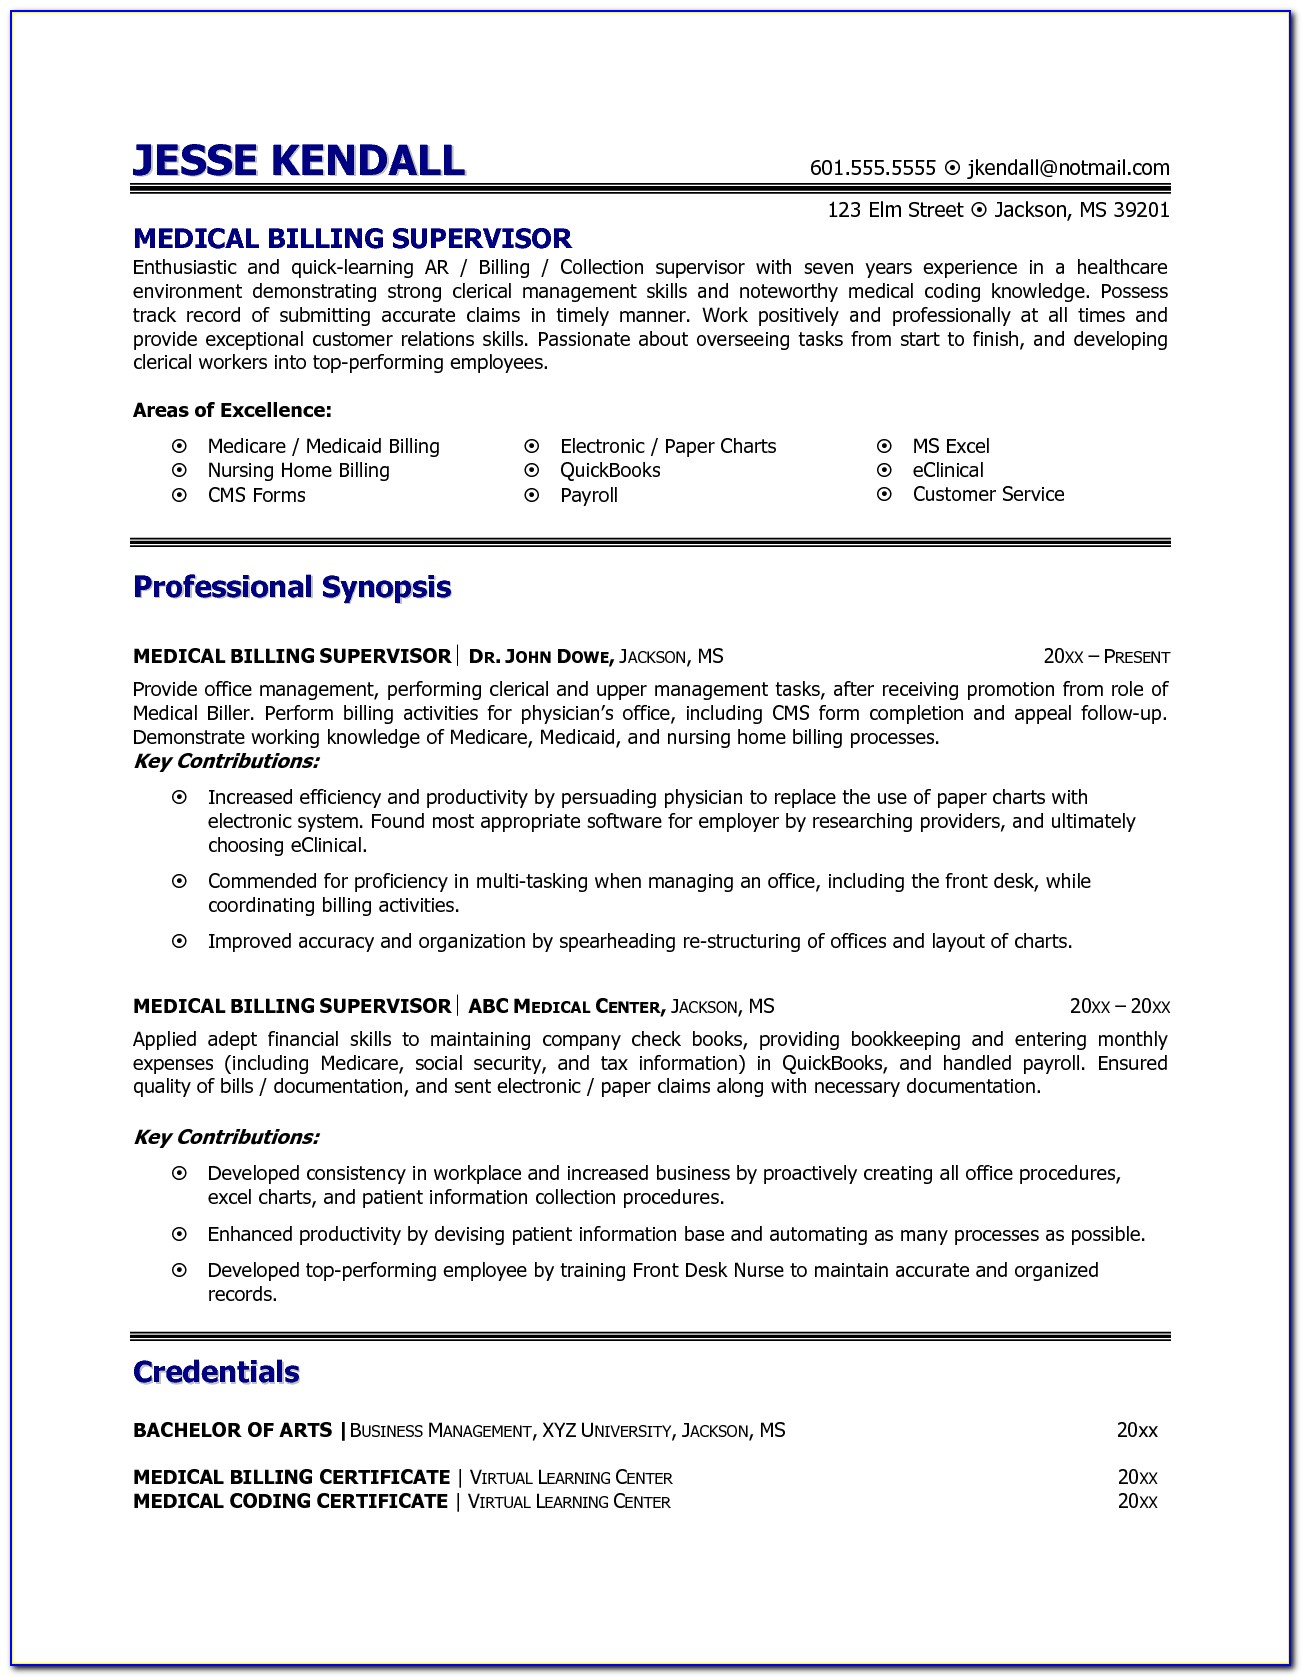 resume examples for medical billing and coding vincegray2014 objective man string cheese Resume Medical Billing Resume Objective